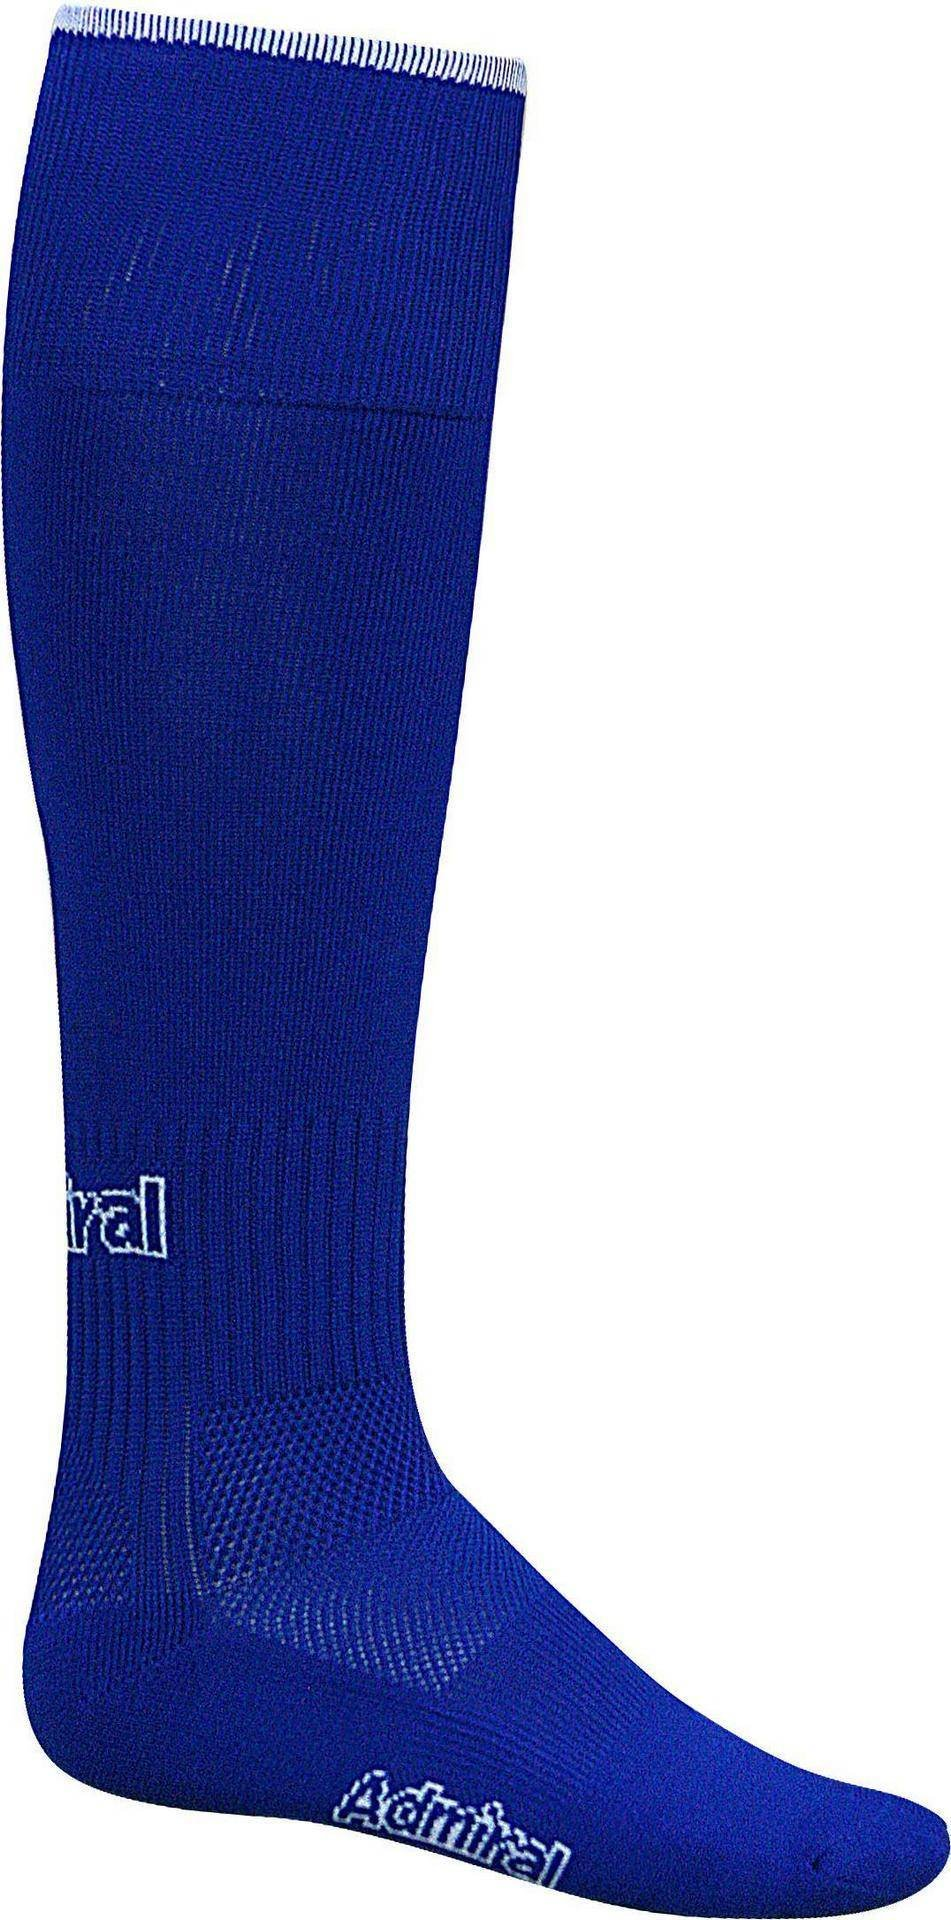 Admiral Professional Soccer Socks, Royal/White, Adult by Admiral